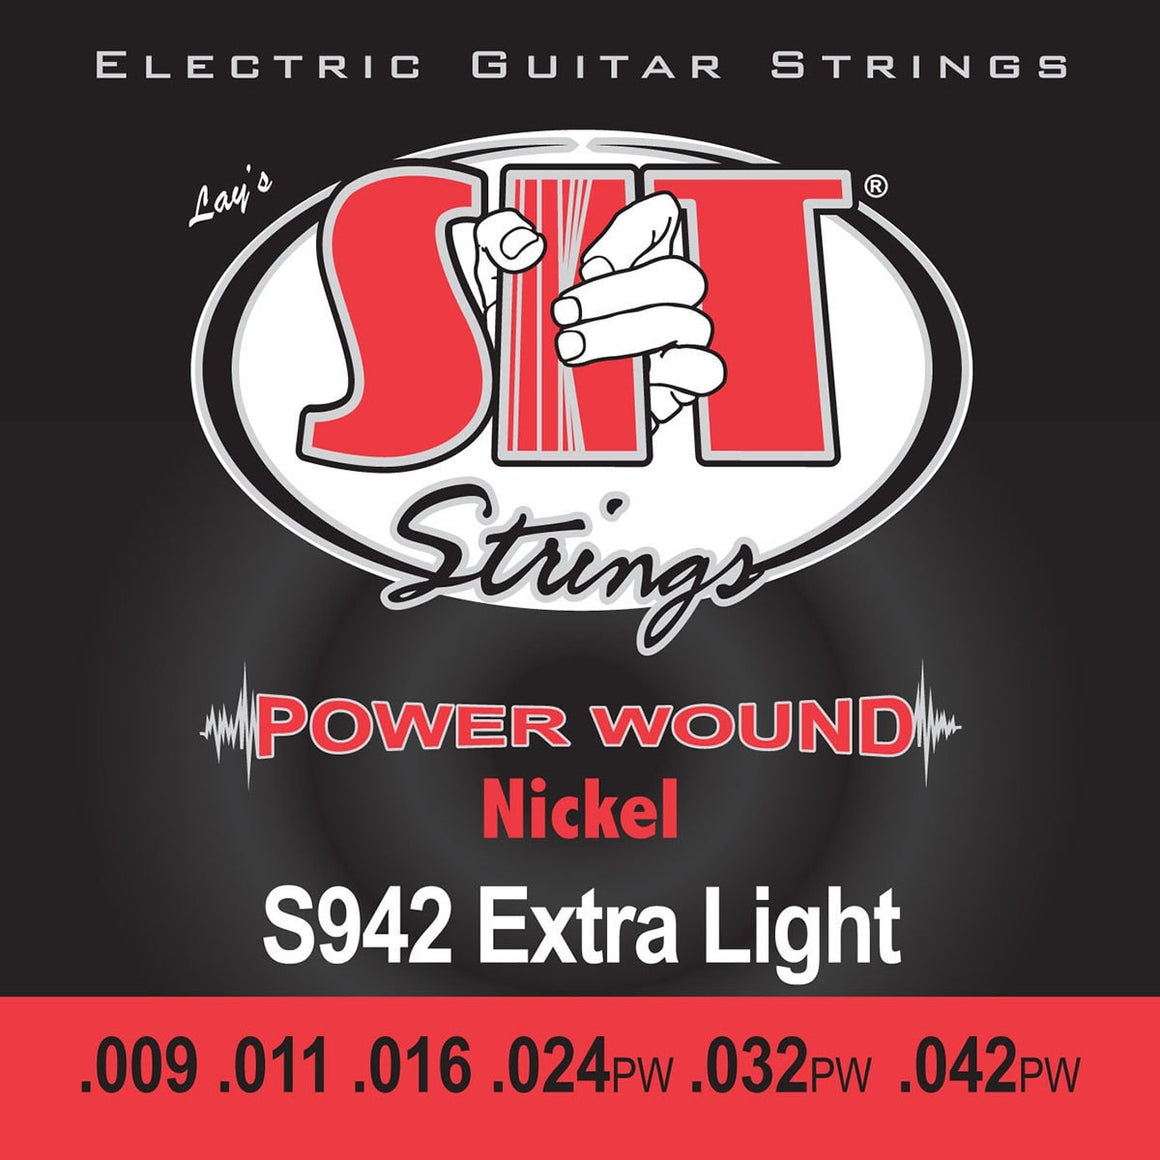 SIT Strings Electric Guitar Strings SIT Power Wound Nickel Extra Light S942 Electric Guitar Strings